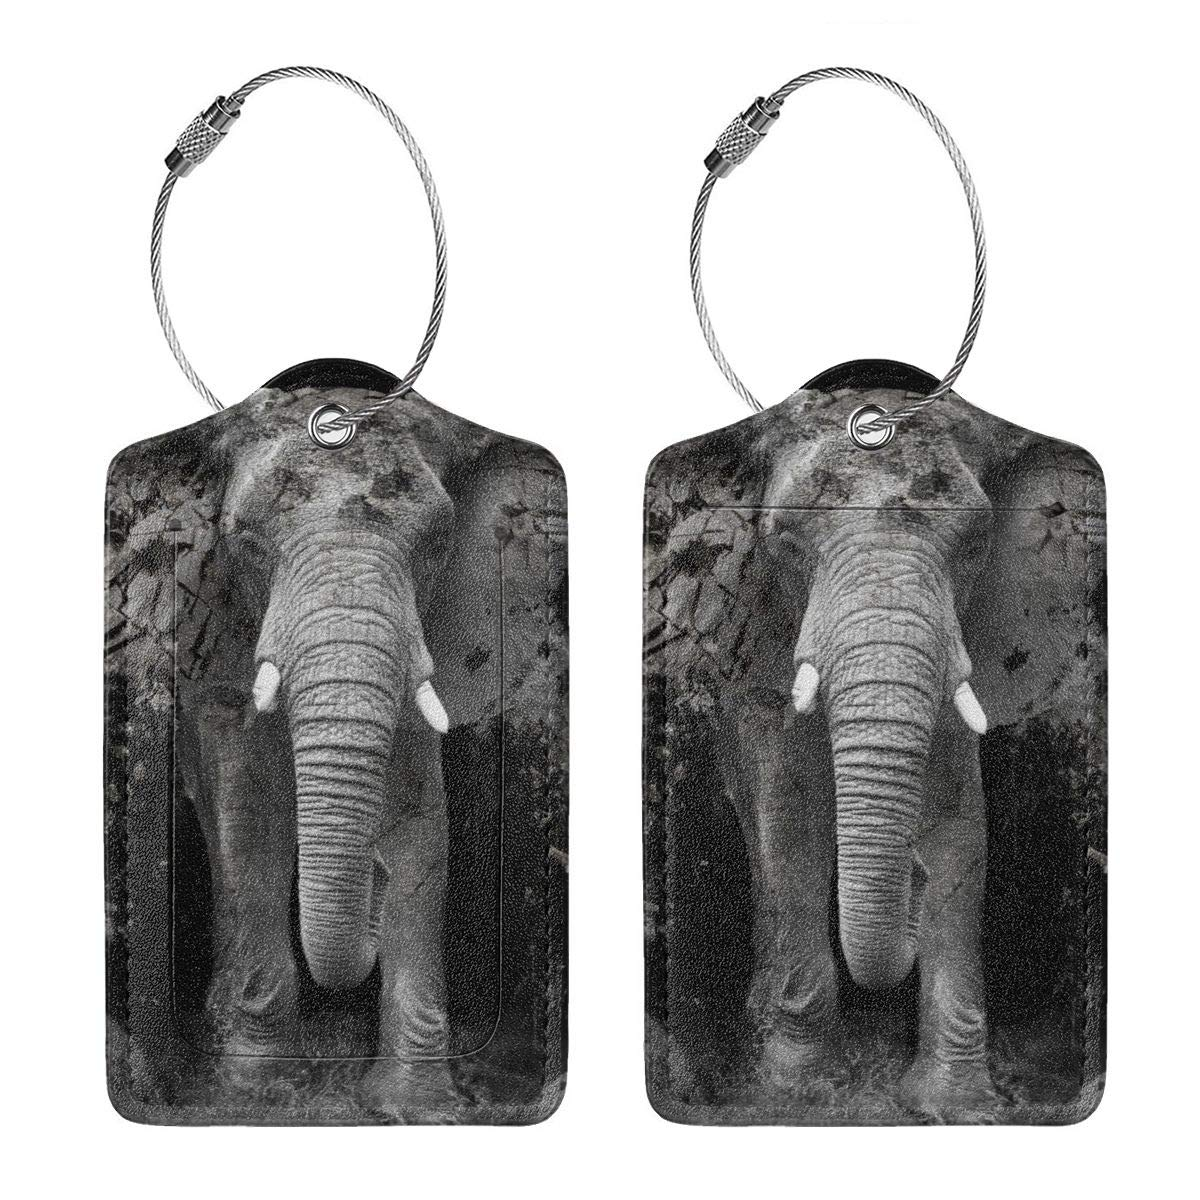 Shattered Elephants Travel Luggage Tags With Full Privacy Cover Leather Case And Stainless Steel Loop